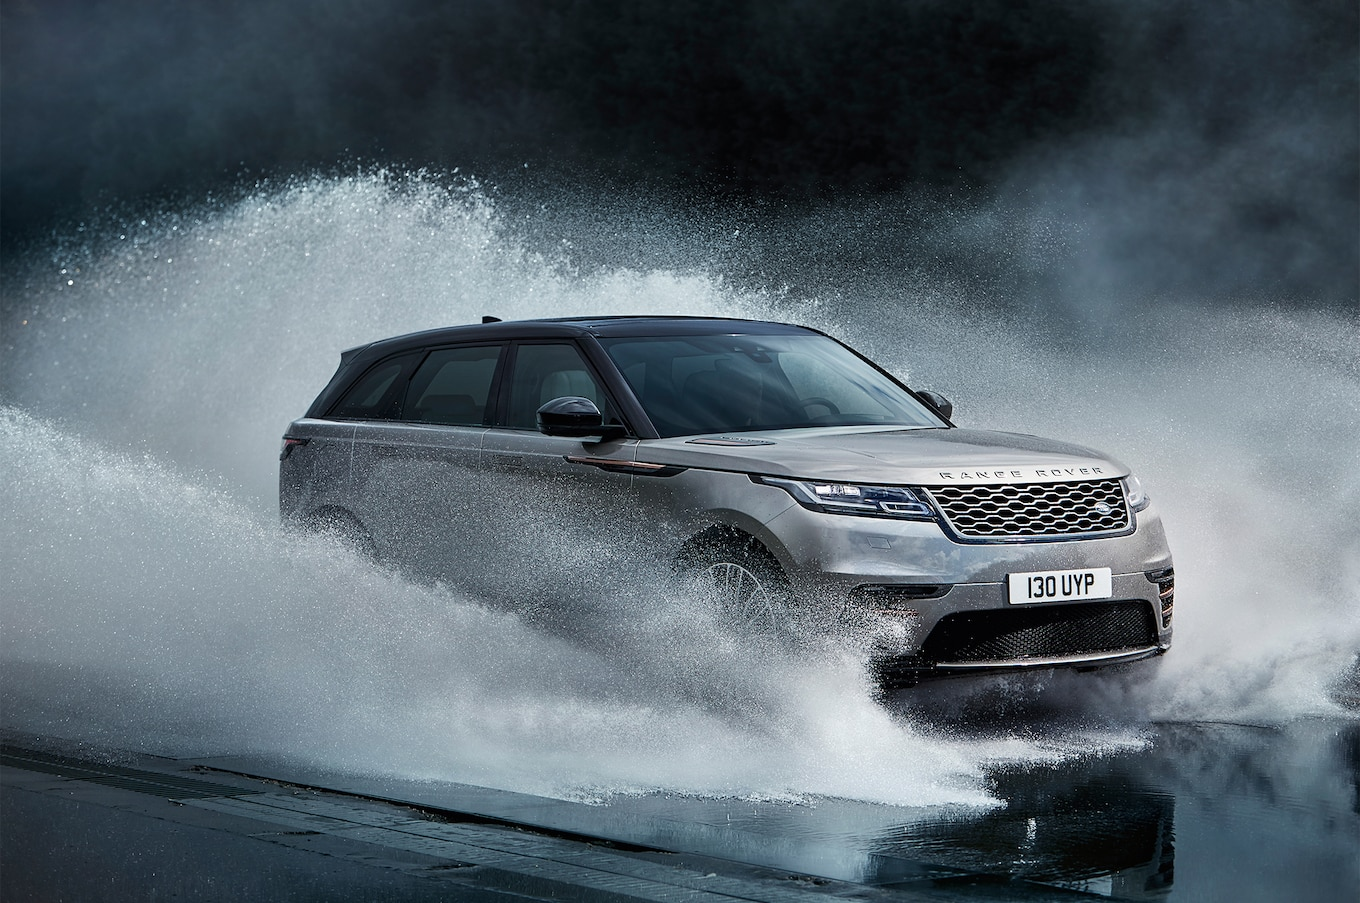 Land Rover Range Rover Velar Reviews Research New & Used Models